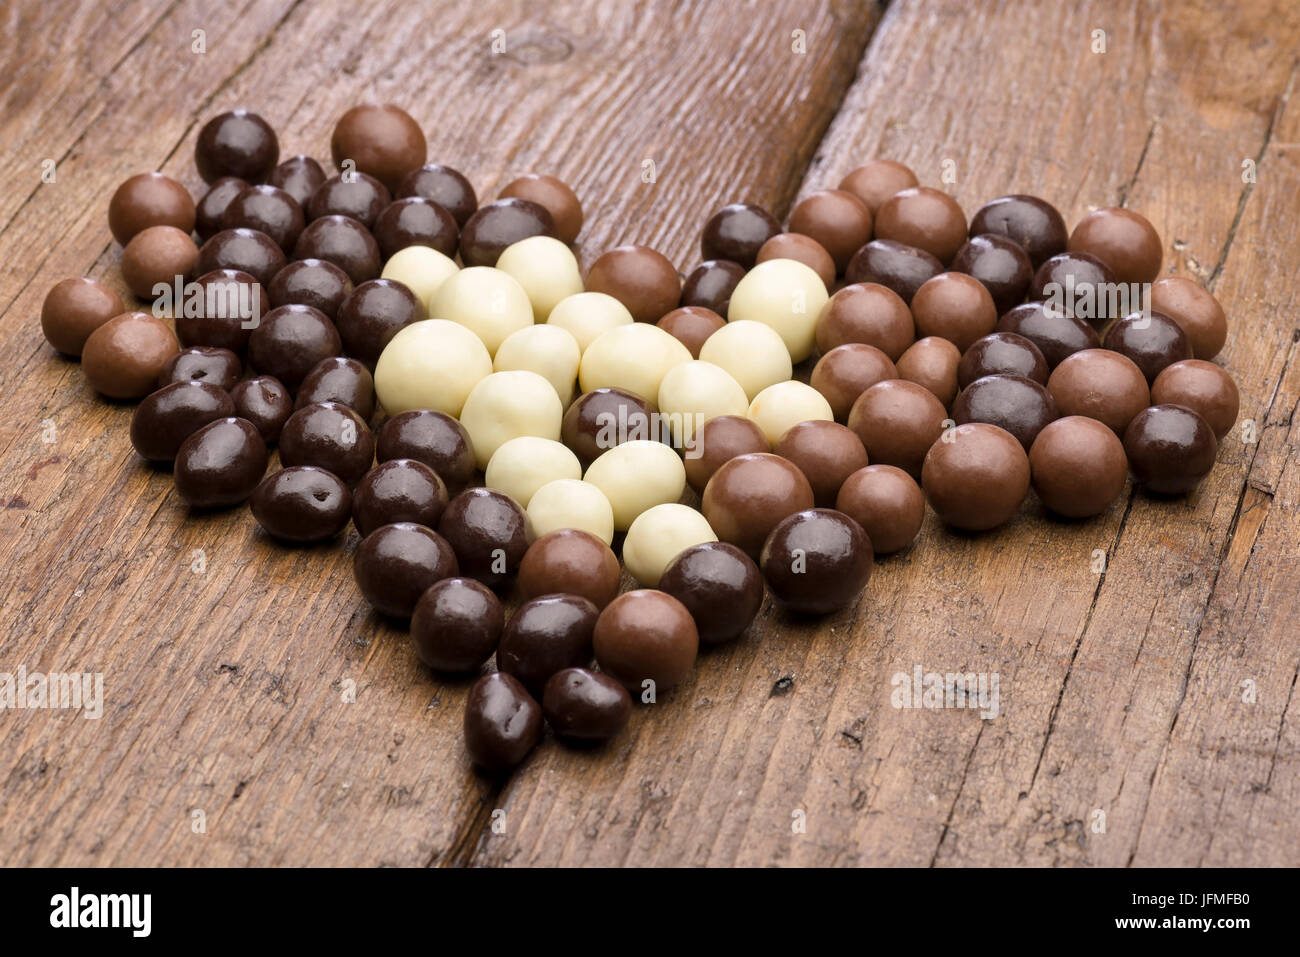 heap of assorted chocolate pralines on wooden table - Stock Image